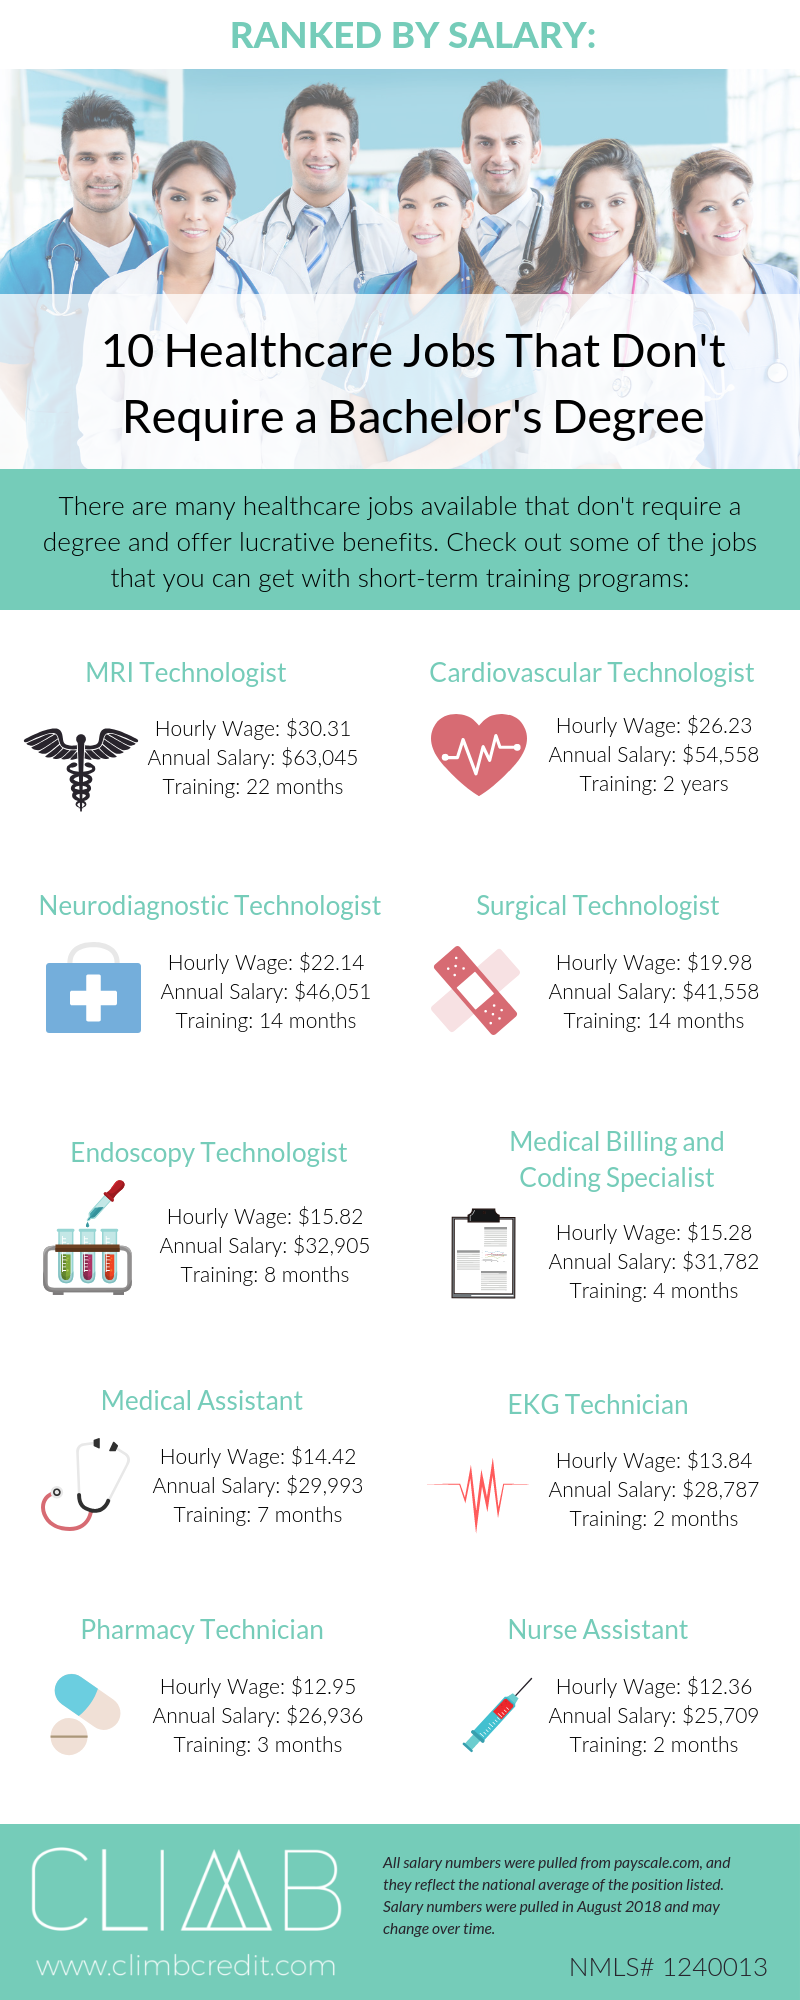 10 Healthcare Jobs That Don't Require a Bachelor's Degree